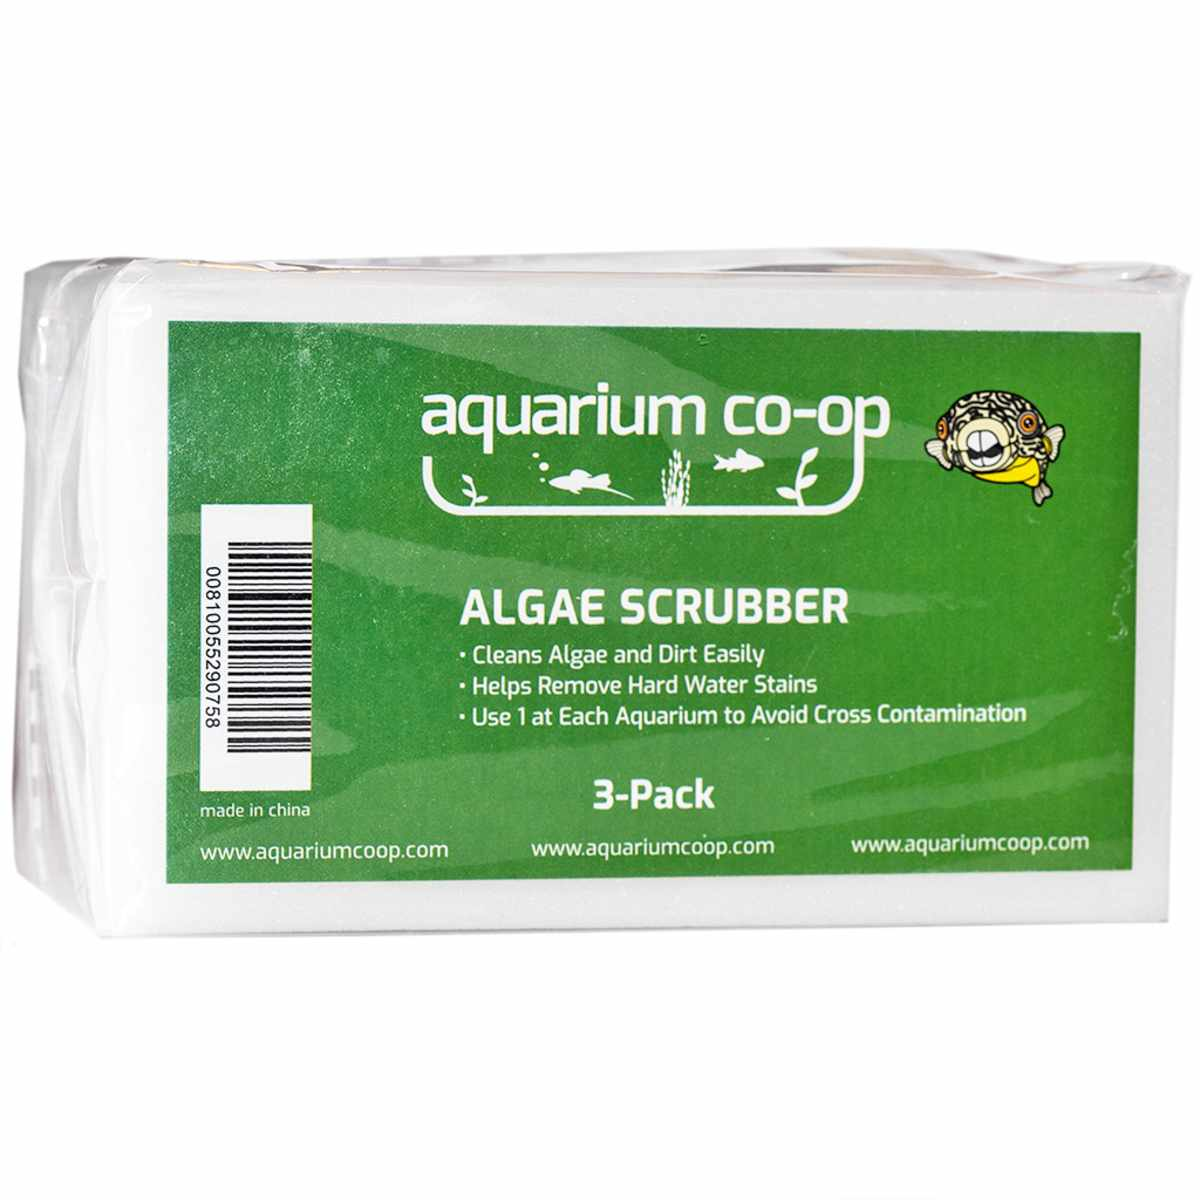 Algae Scrubber (3-PACK)